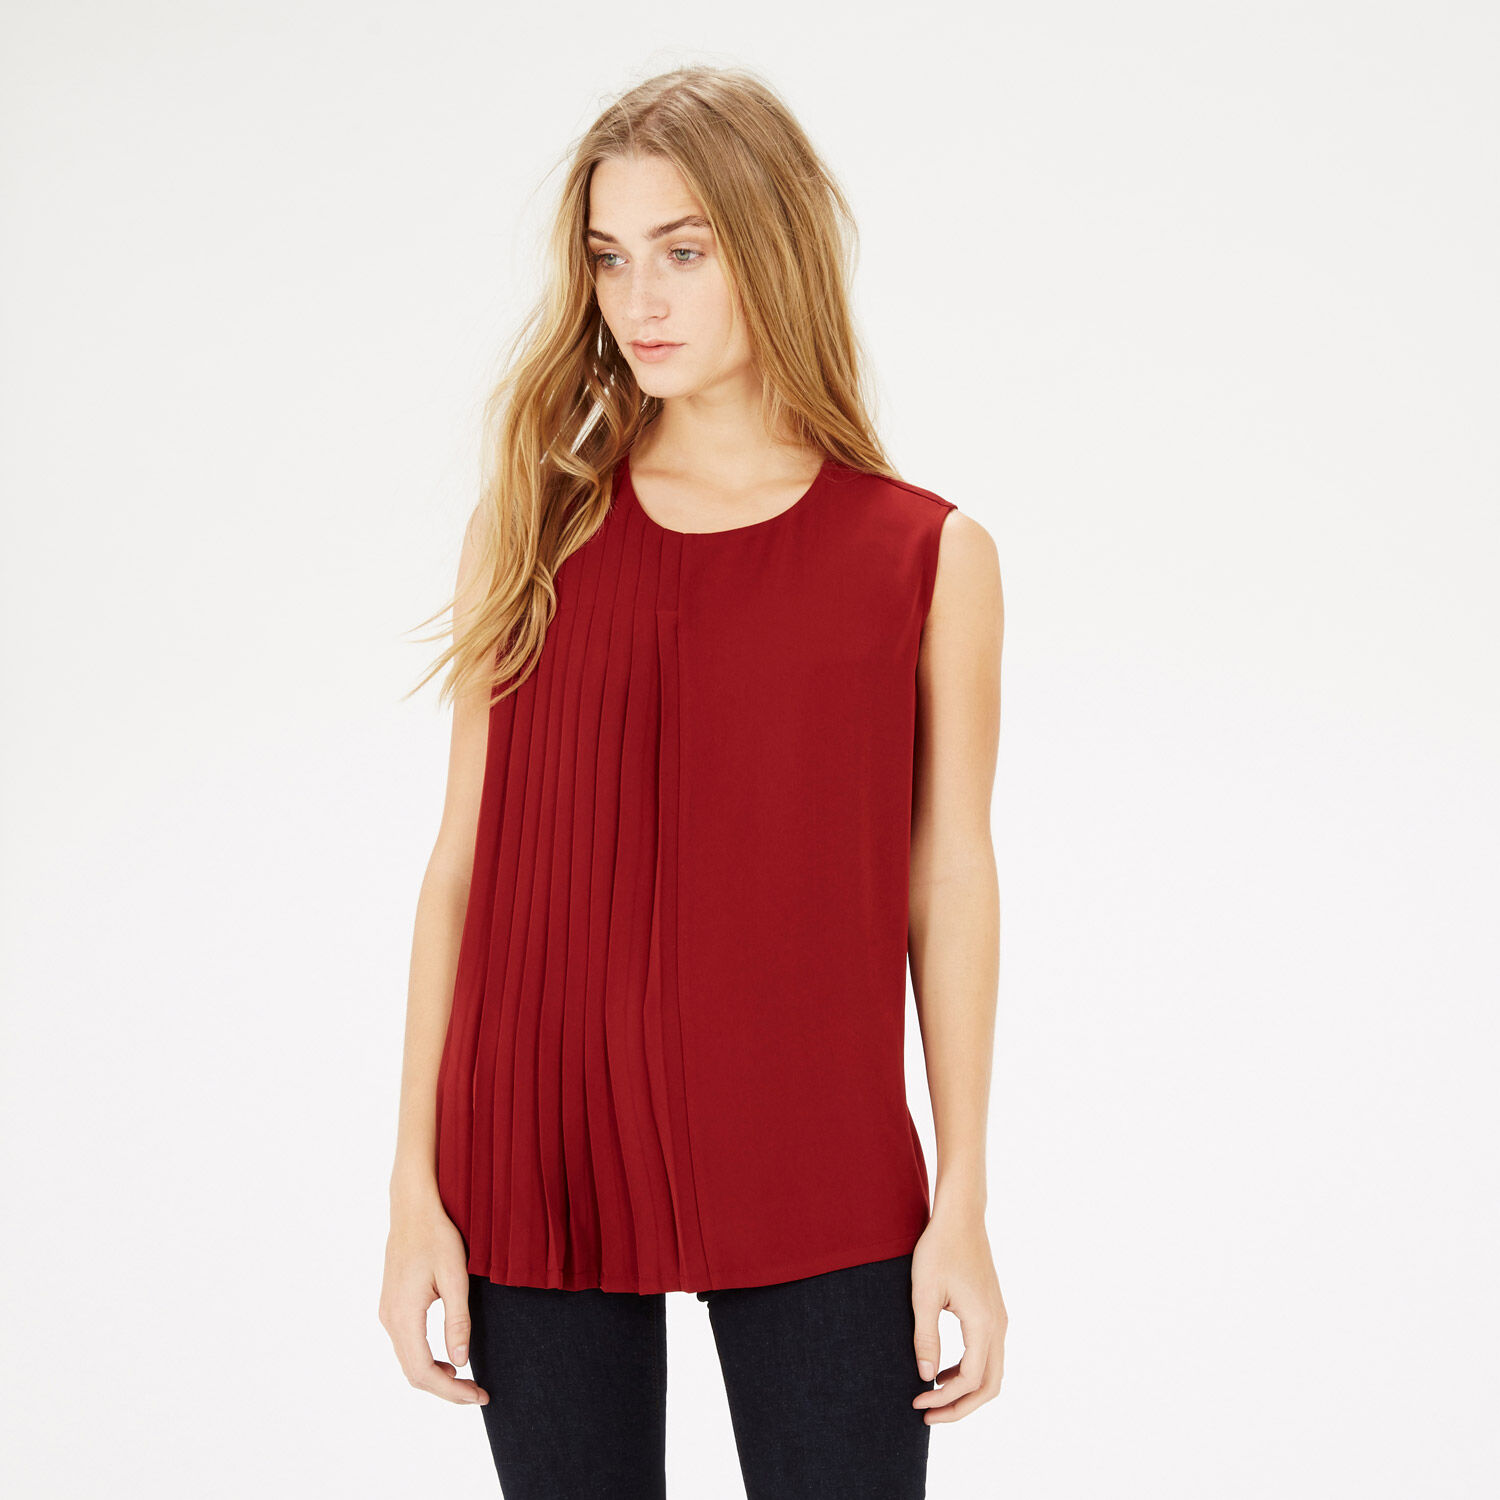 Warehouse, PLEAT FRONT SHELL TOP Dark Red 1